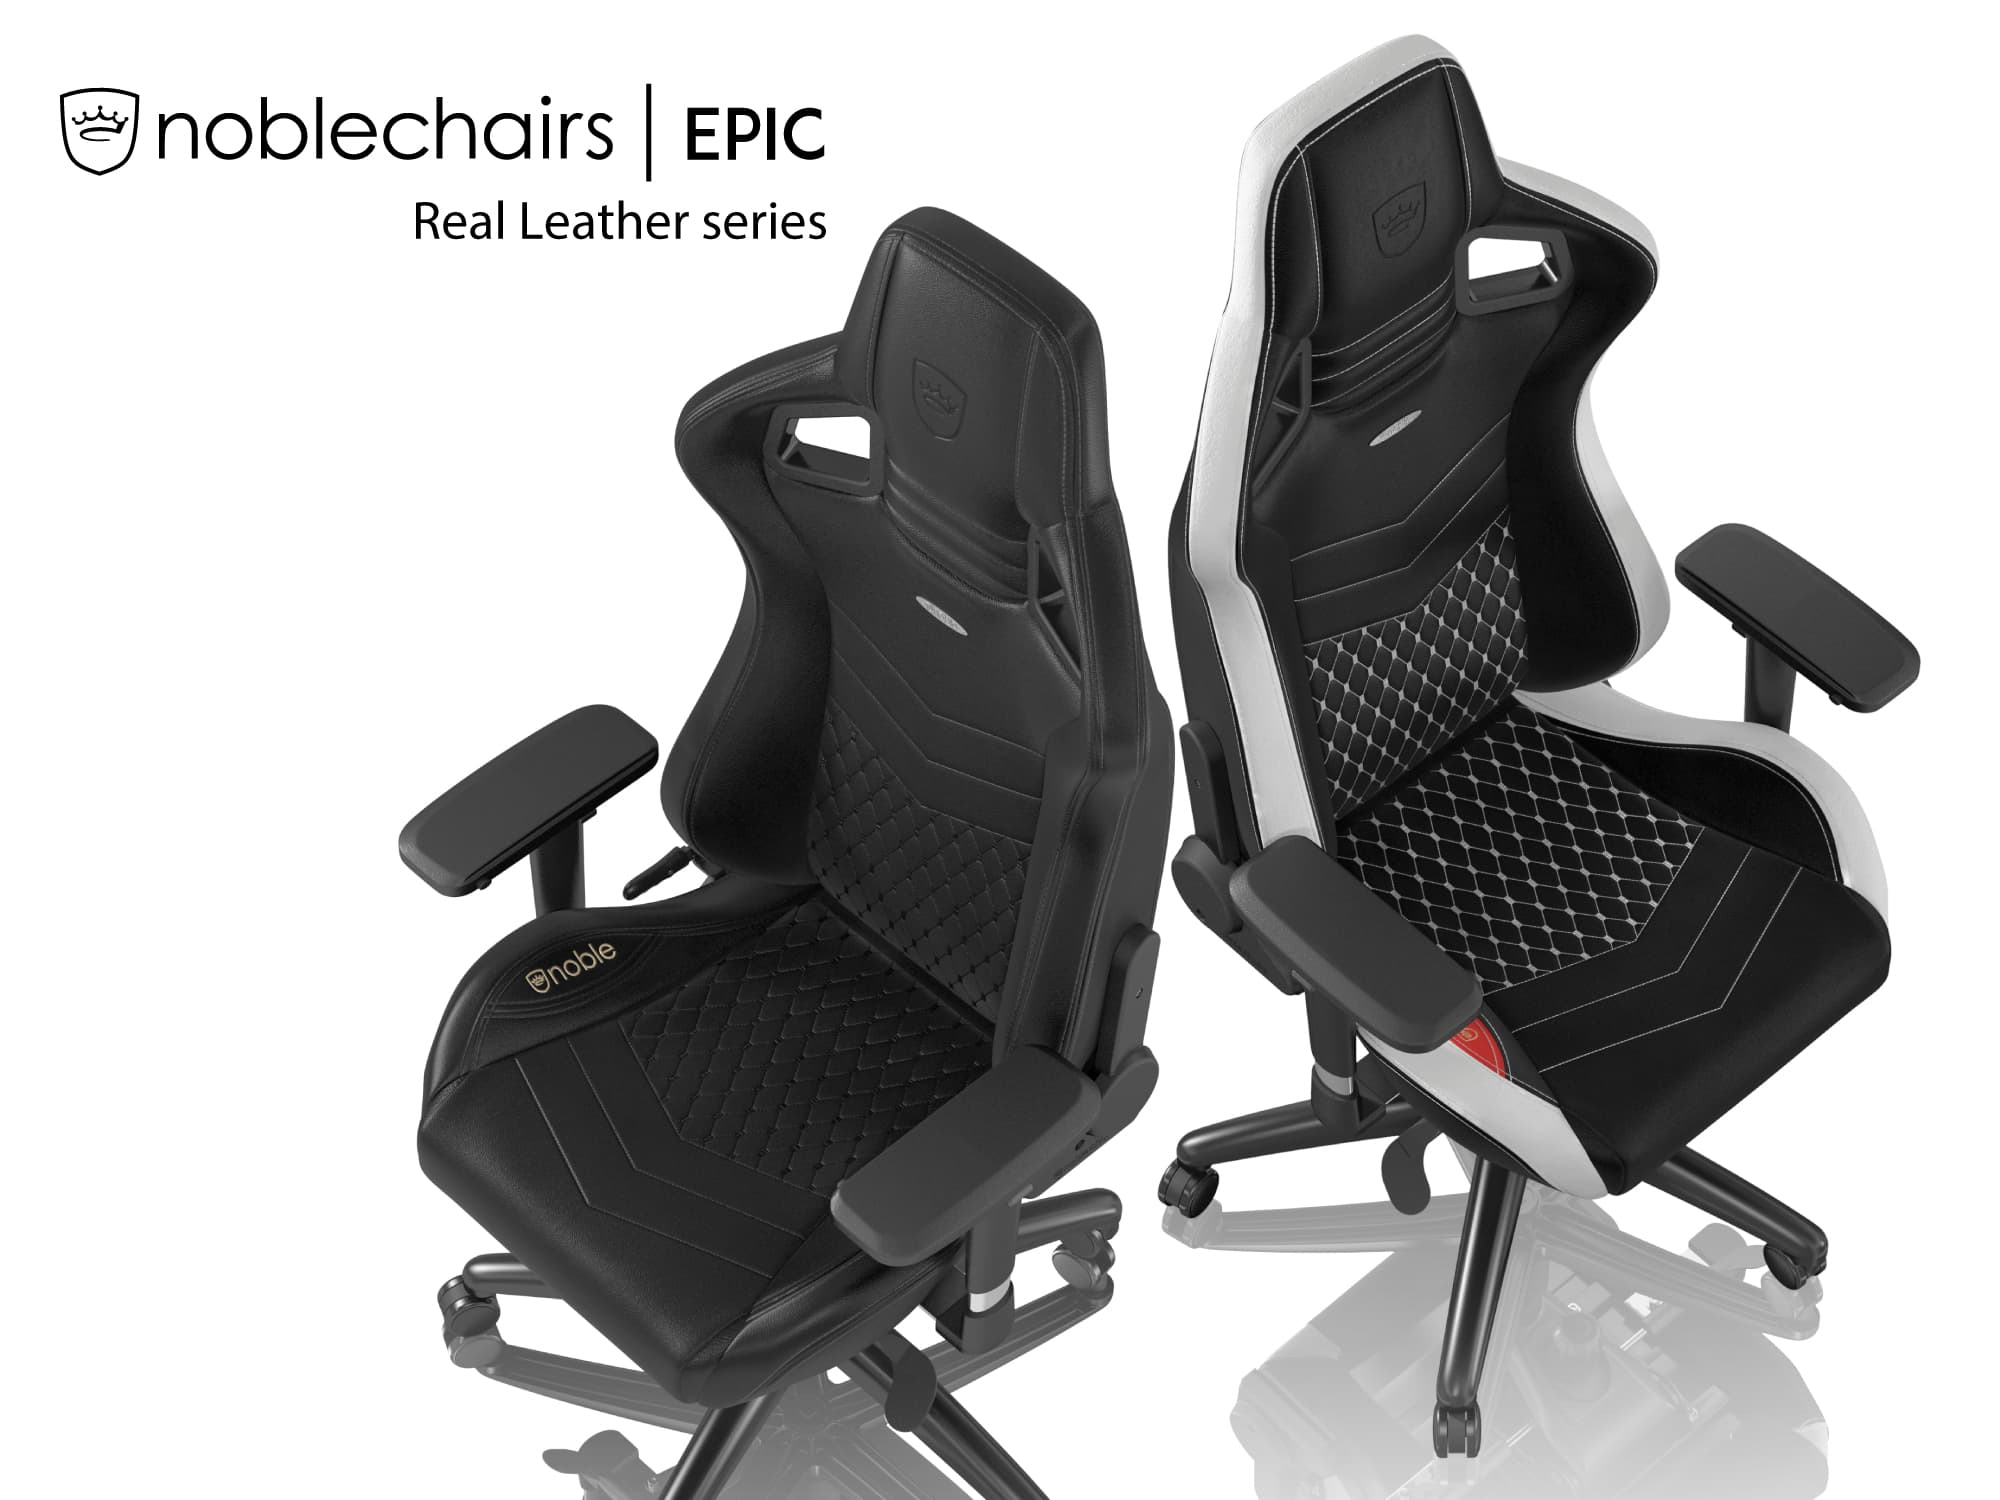 noblechairs-Epic-RL